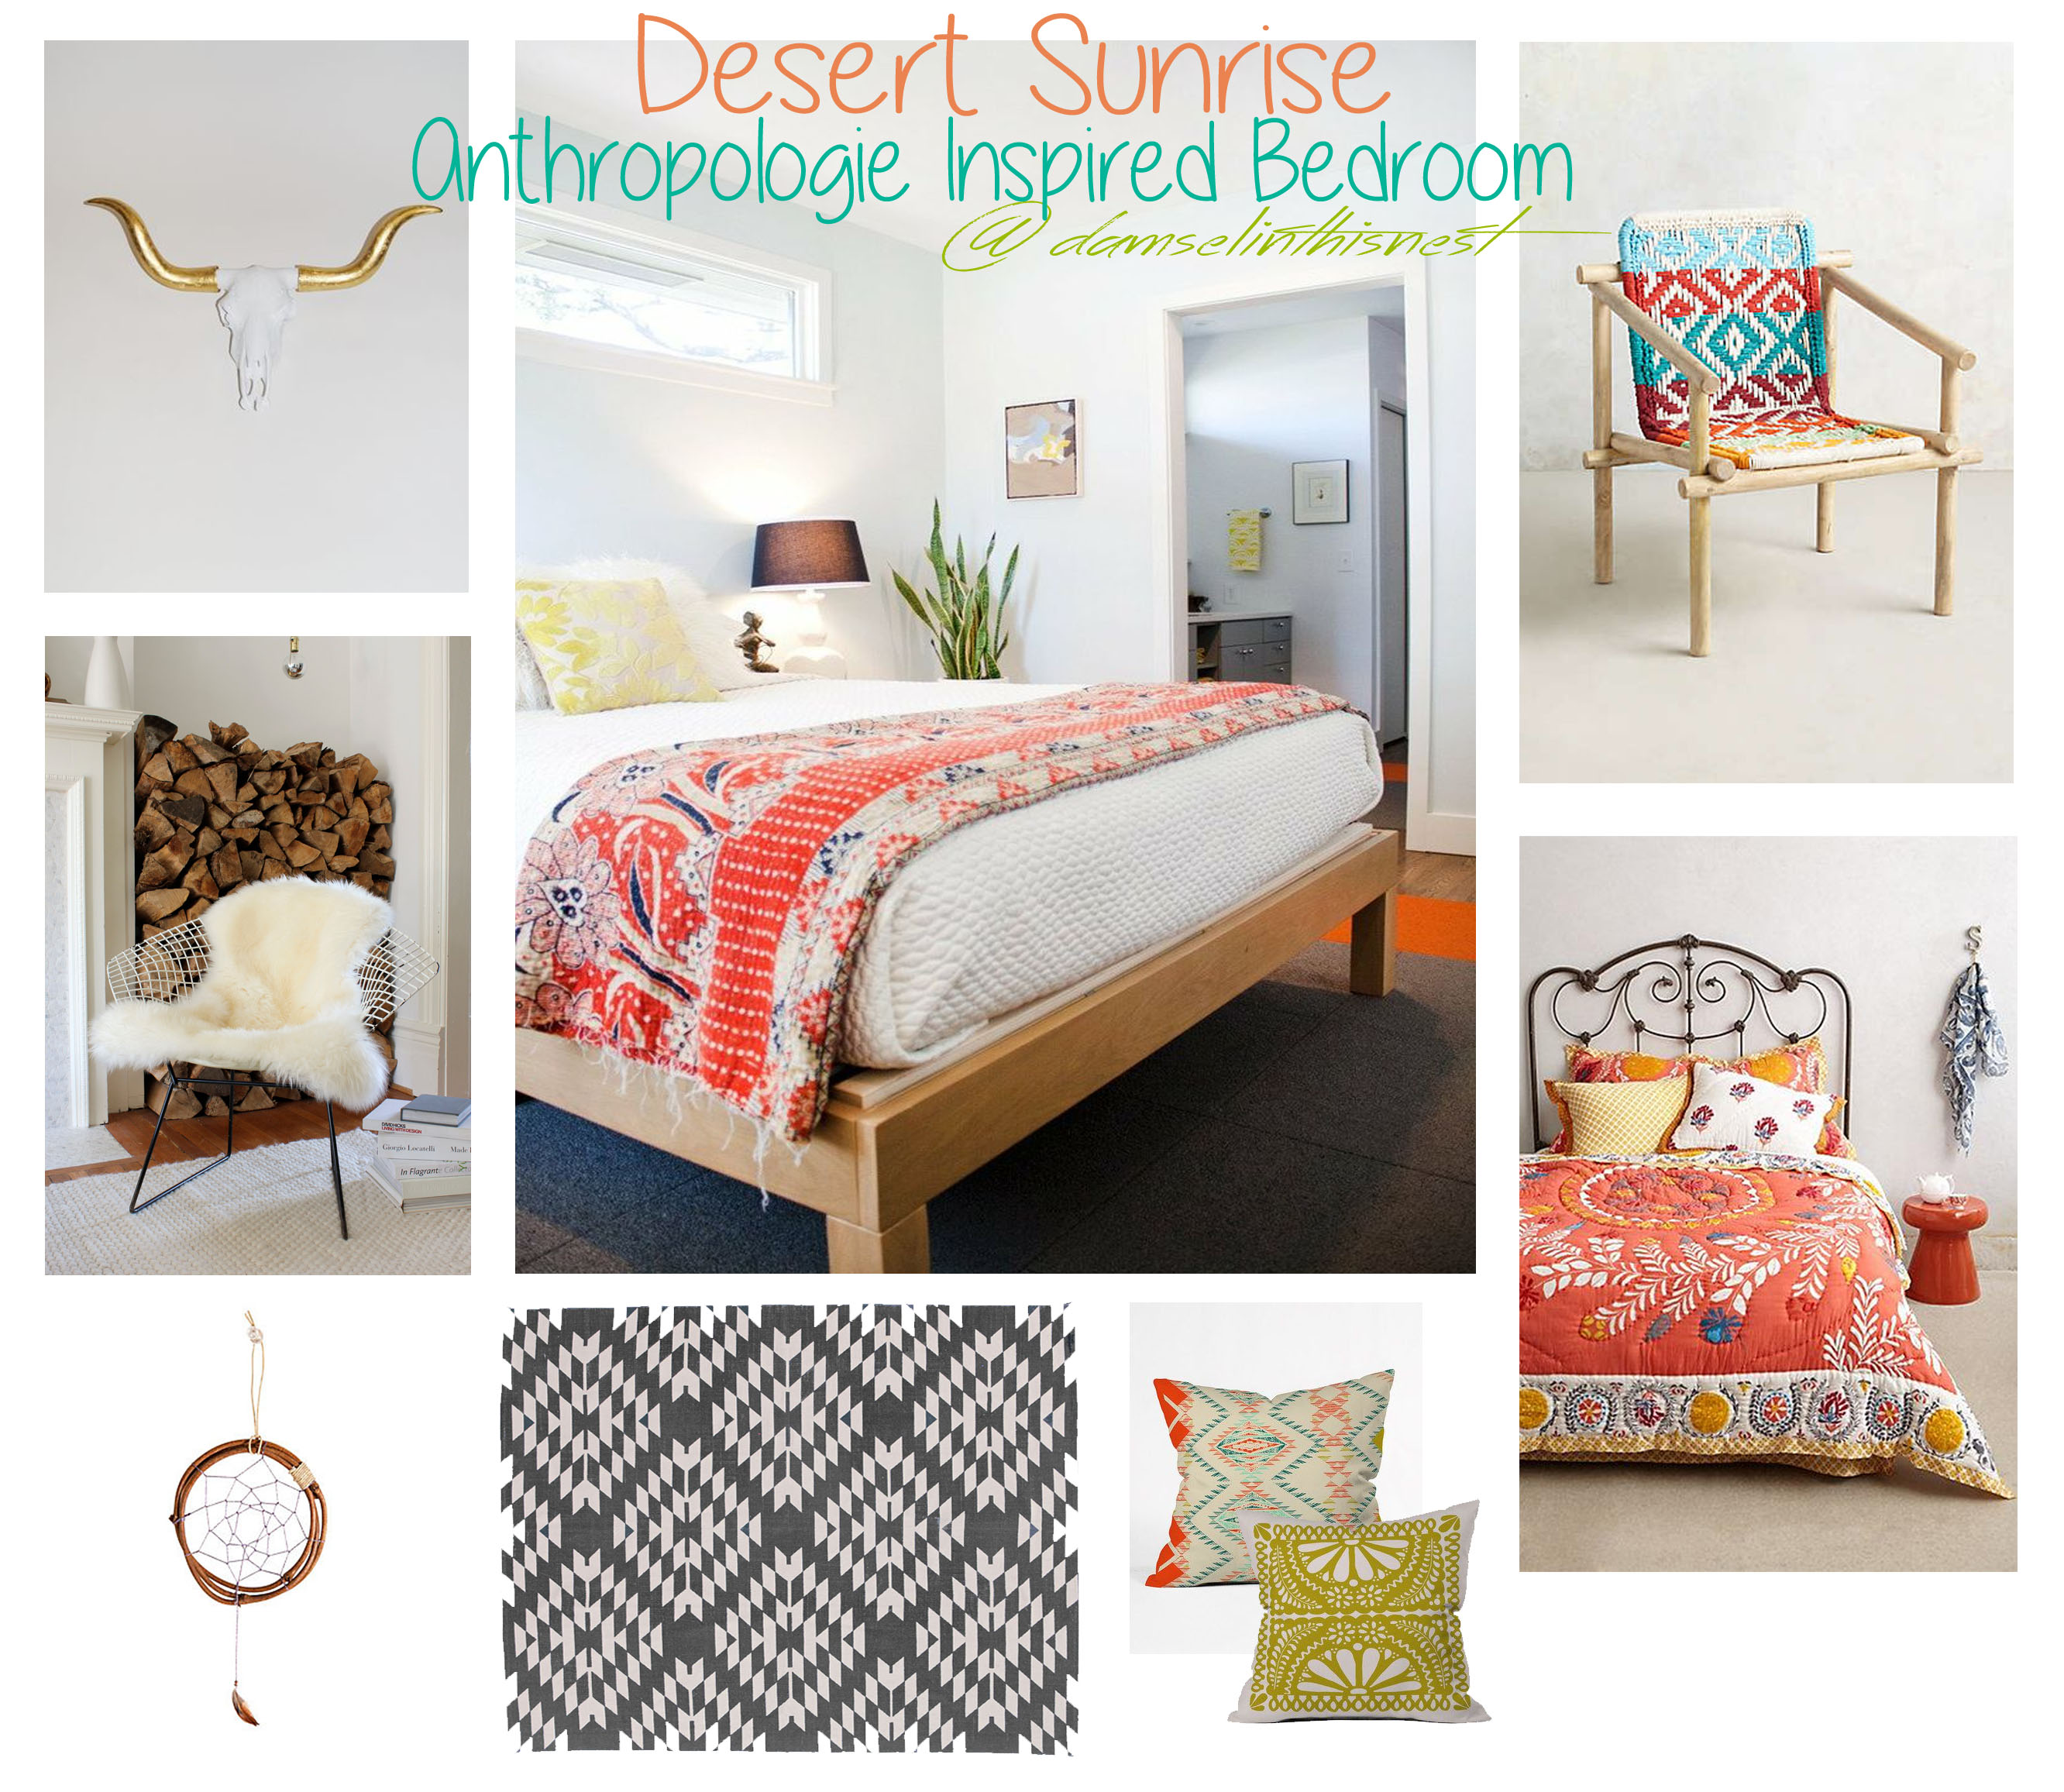 Desert Sunrise Anthropologie Inspired Bedroom Damsel In This Nest